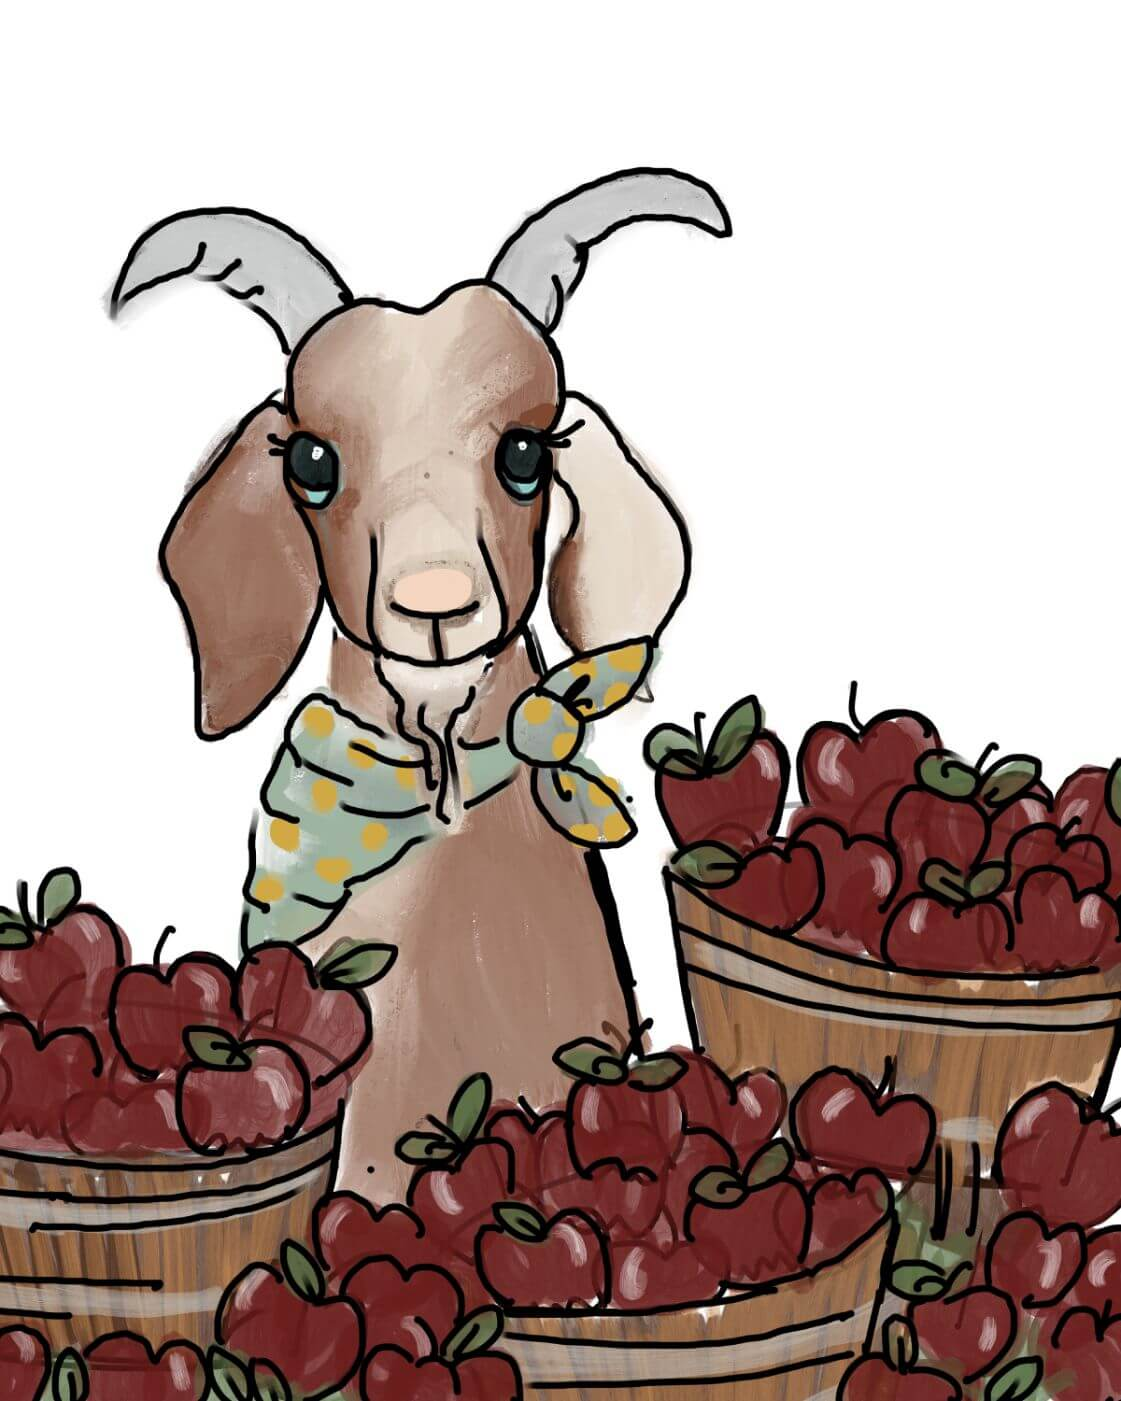 Name-Goat and Apples_Tag-Animals_Collection-Fall